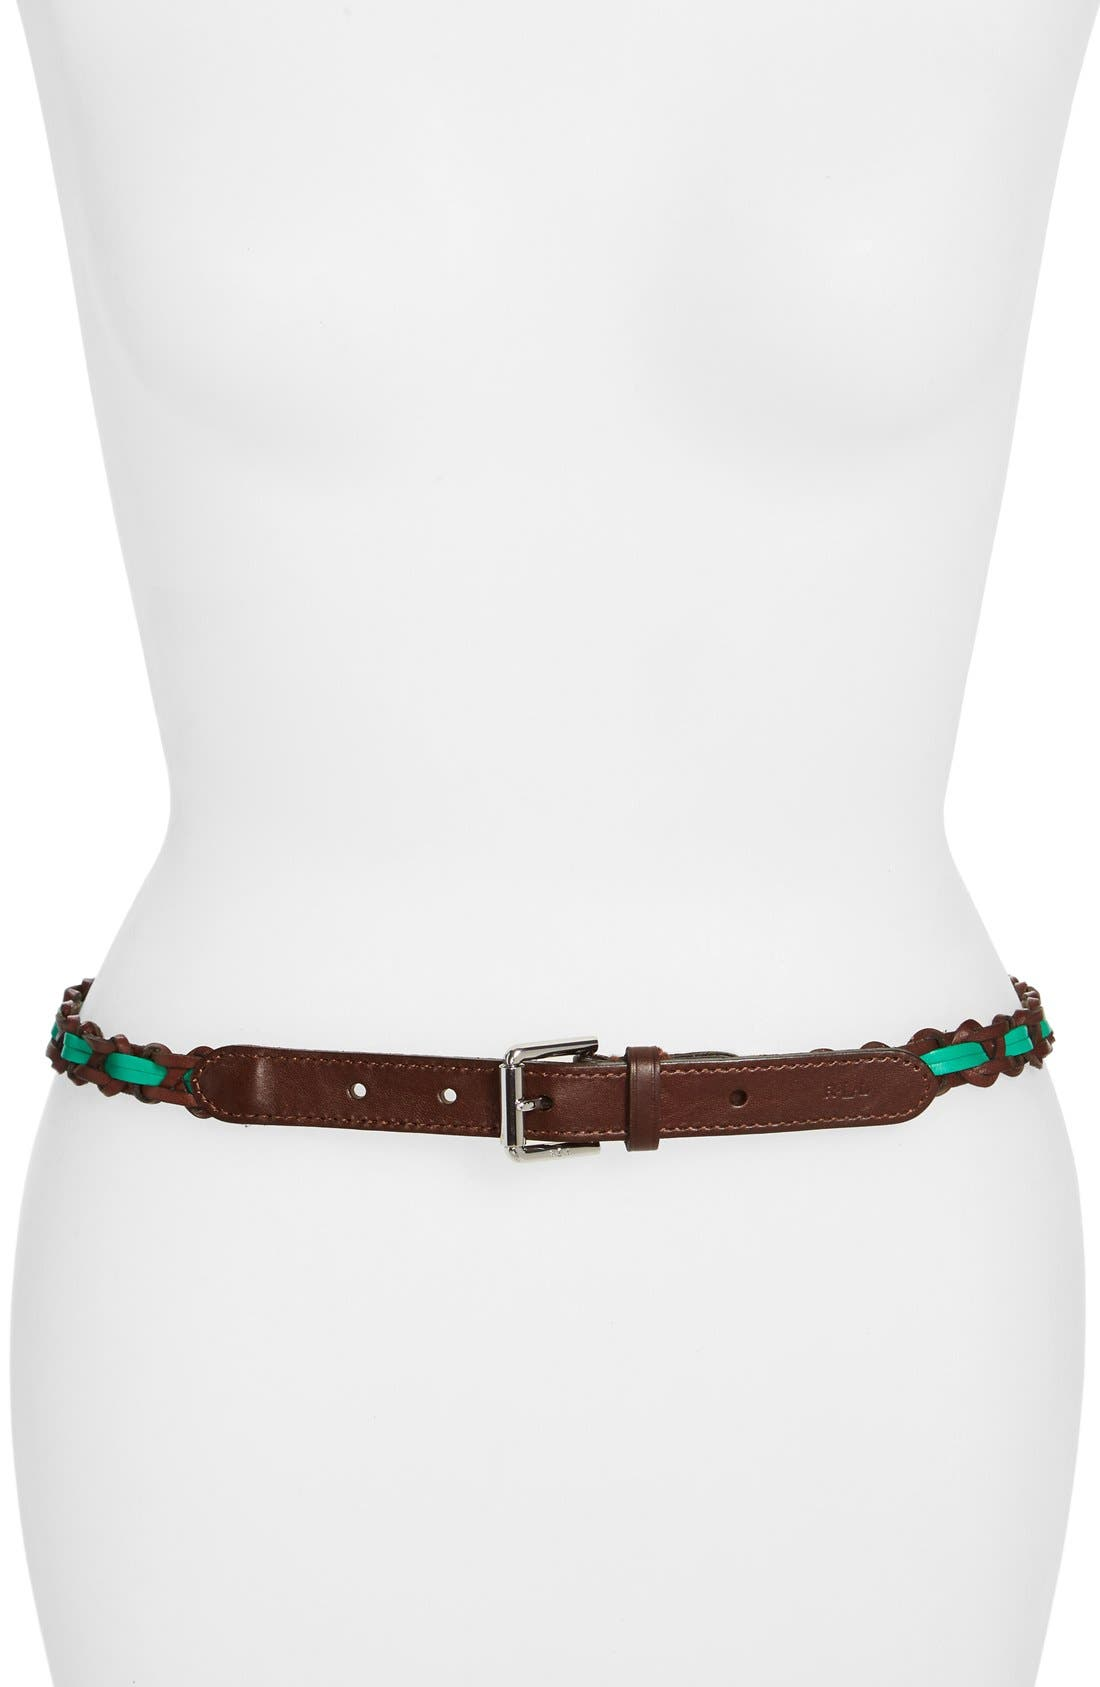 Main Image - Lauren Ralph Lauren Braided Leather Belt